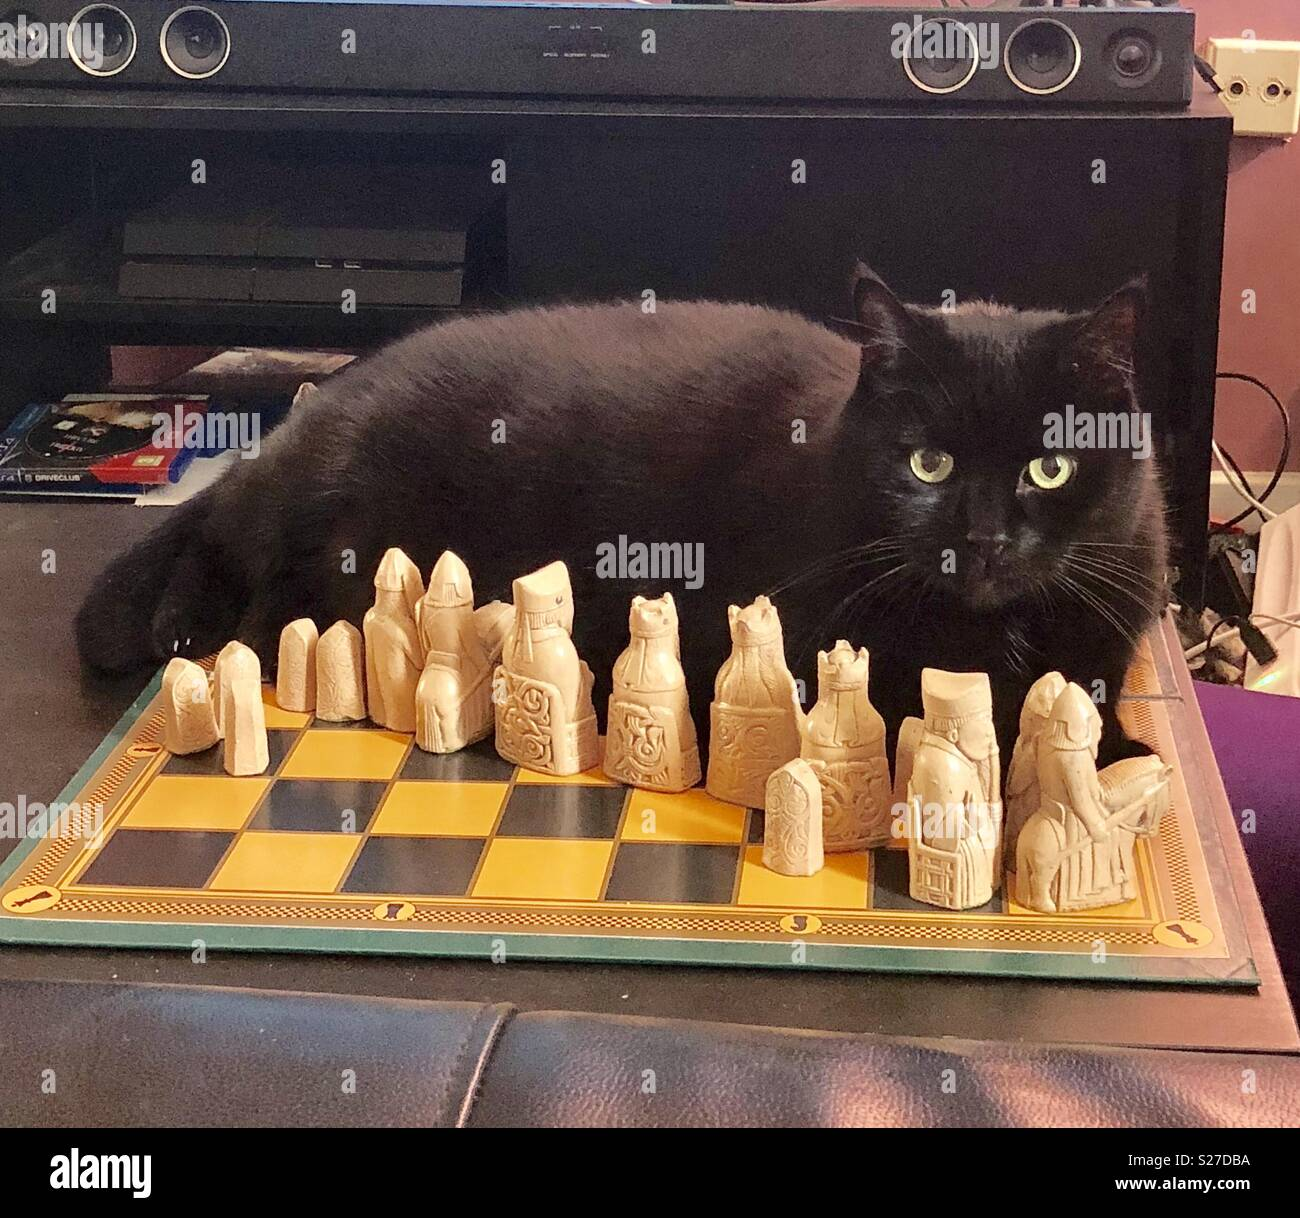 Black cat lying on chess board with Lewis Chessmen - Stock Image